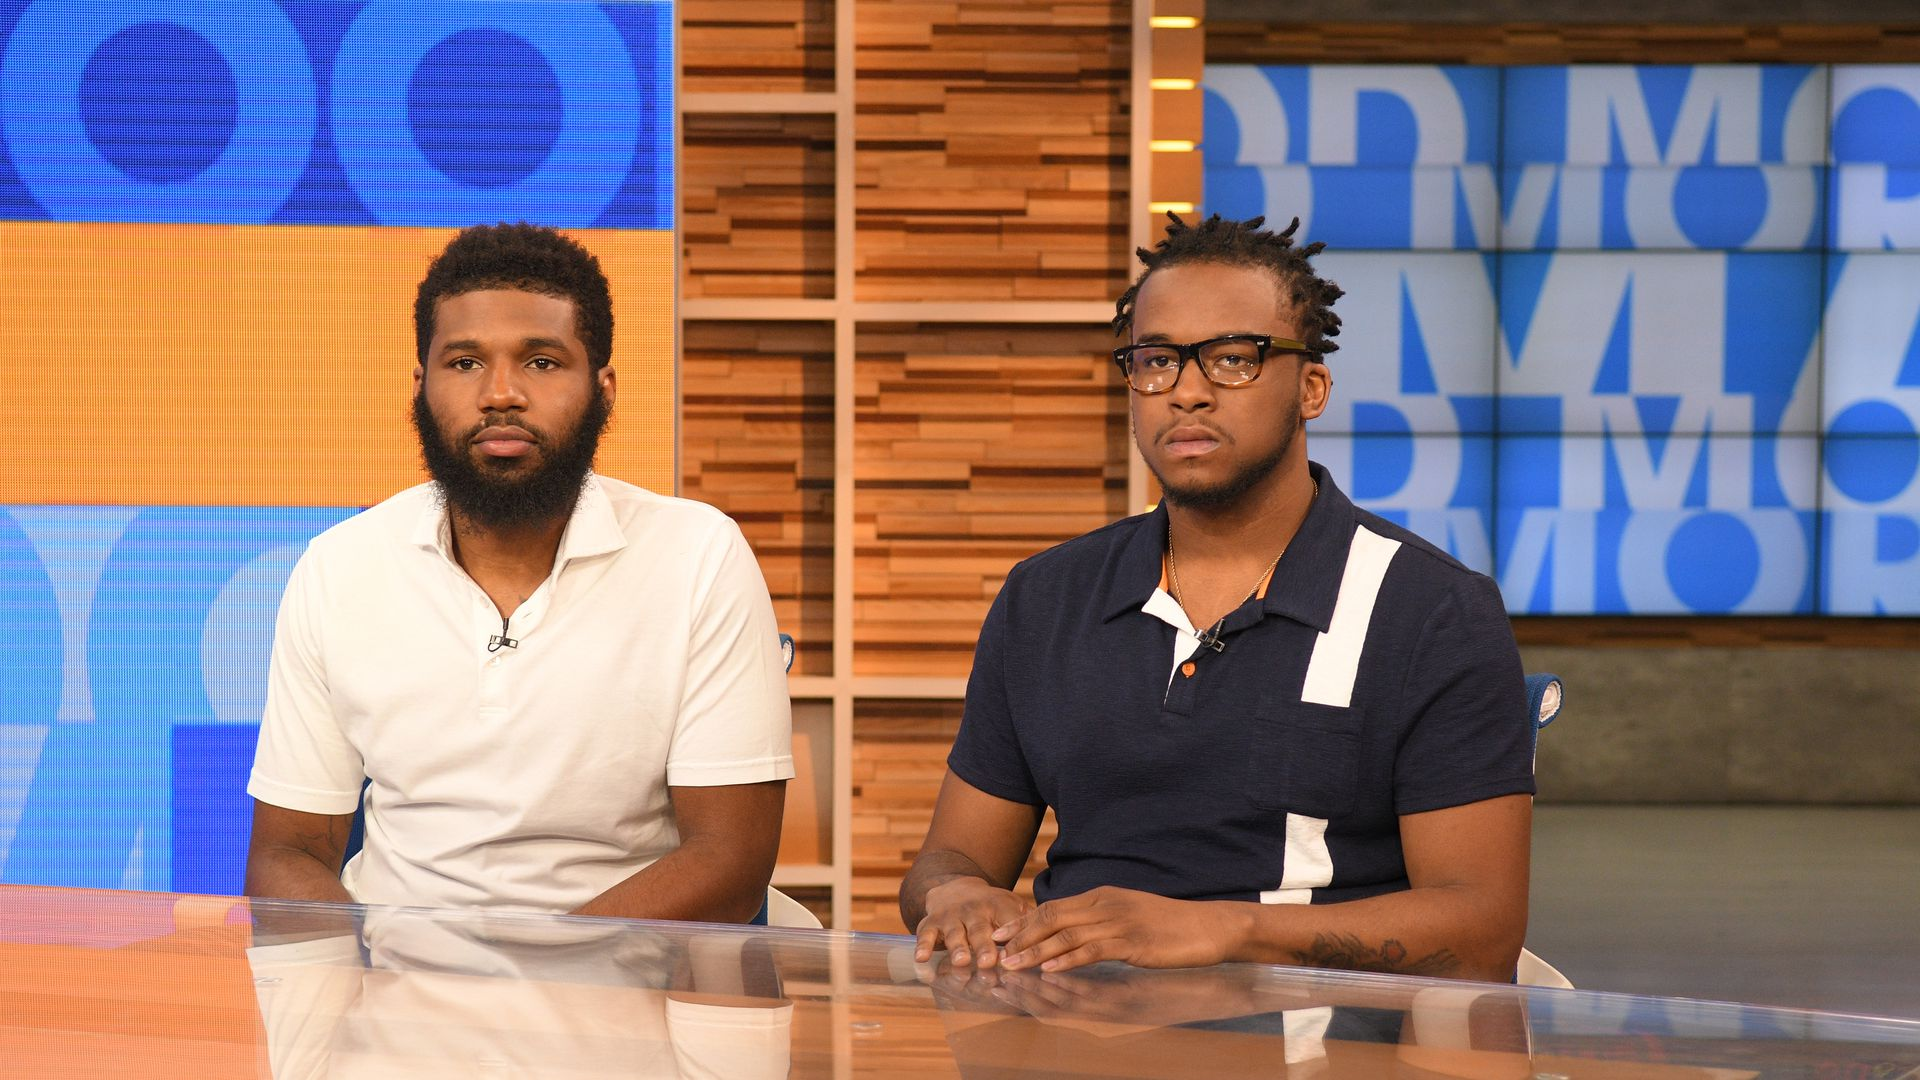 Rashon Nelson and Donte Robinson on Good Morning America